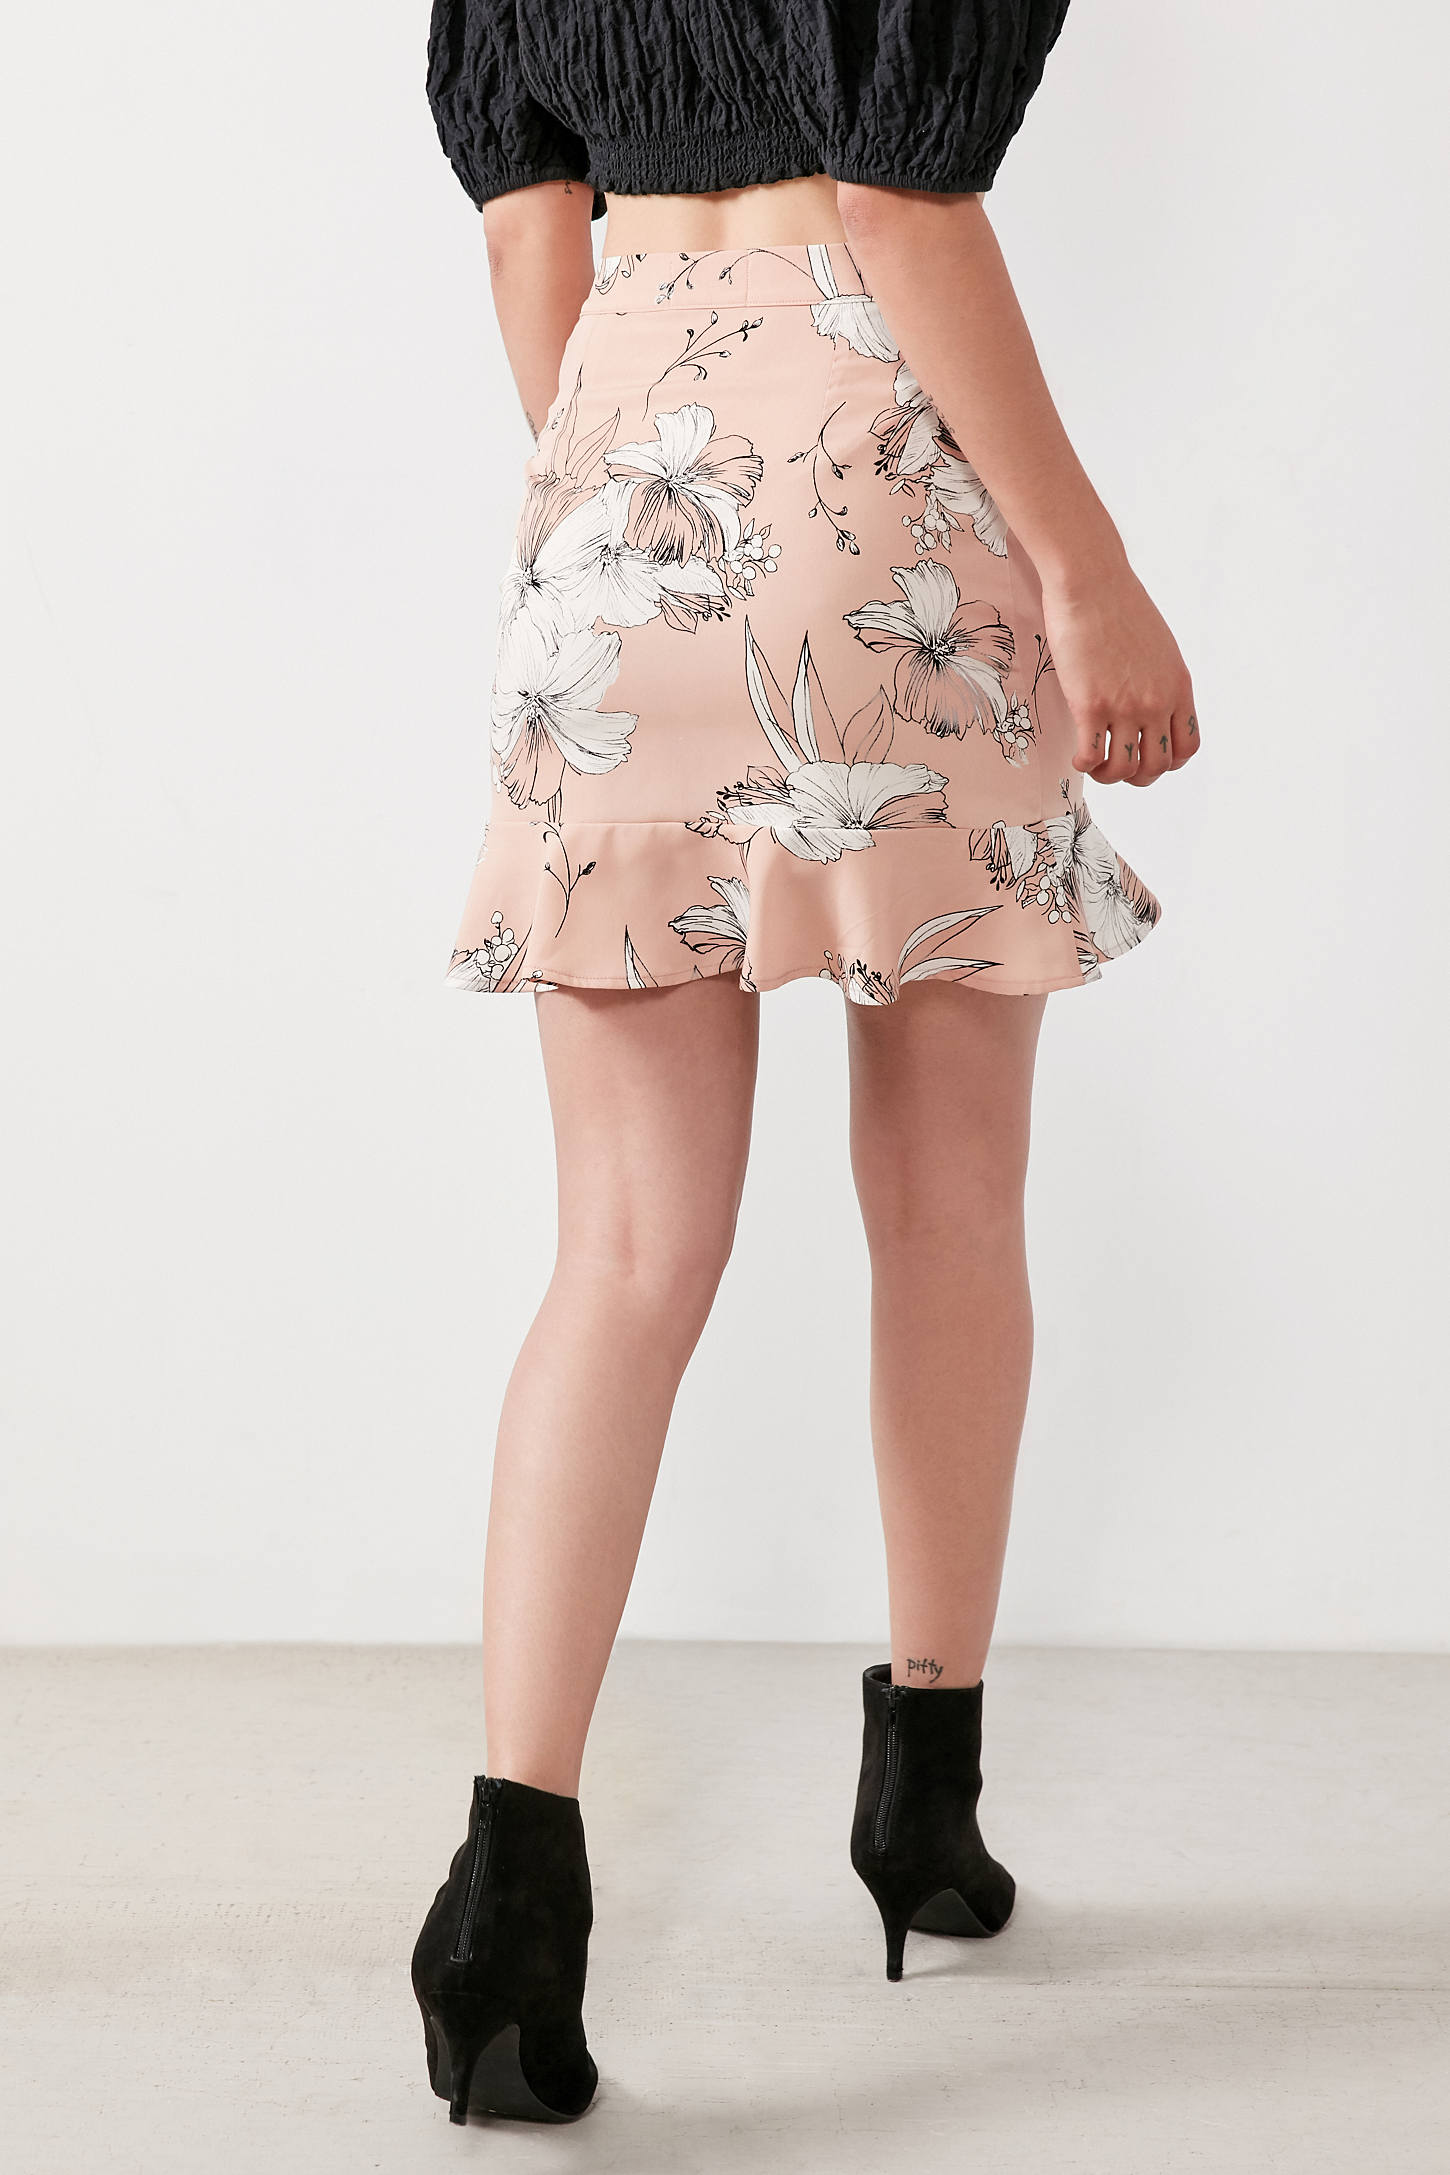 Lost   Wander Naomi Ruffle Mini Skirt | Urban Outfitters